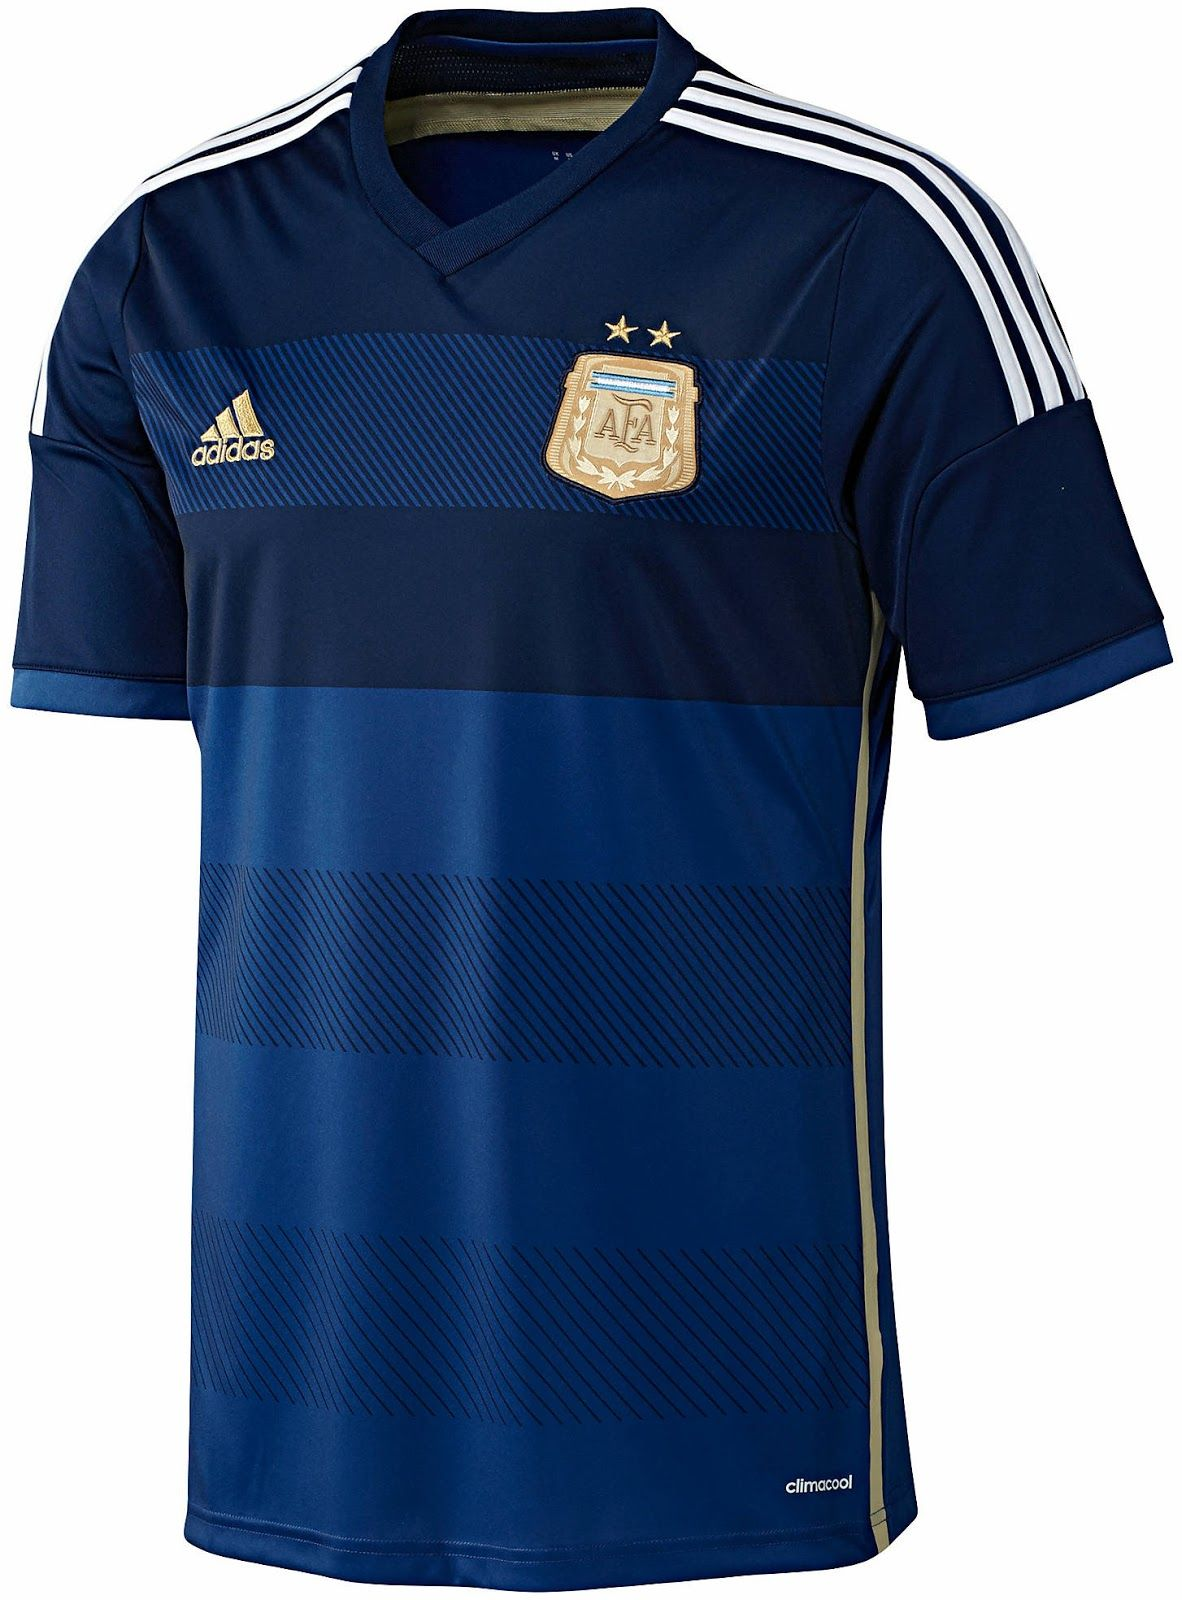 24de7e16b7 world cup away kit this pic shows the new argentina 2014 world cup ...